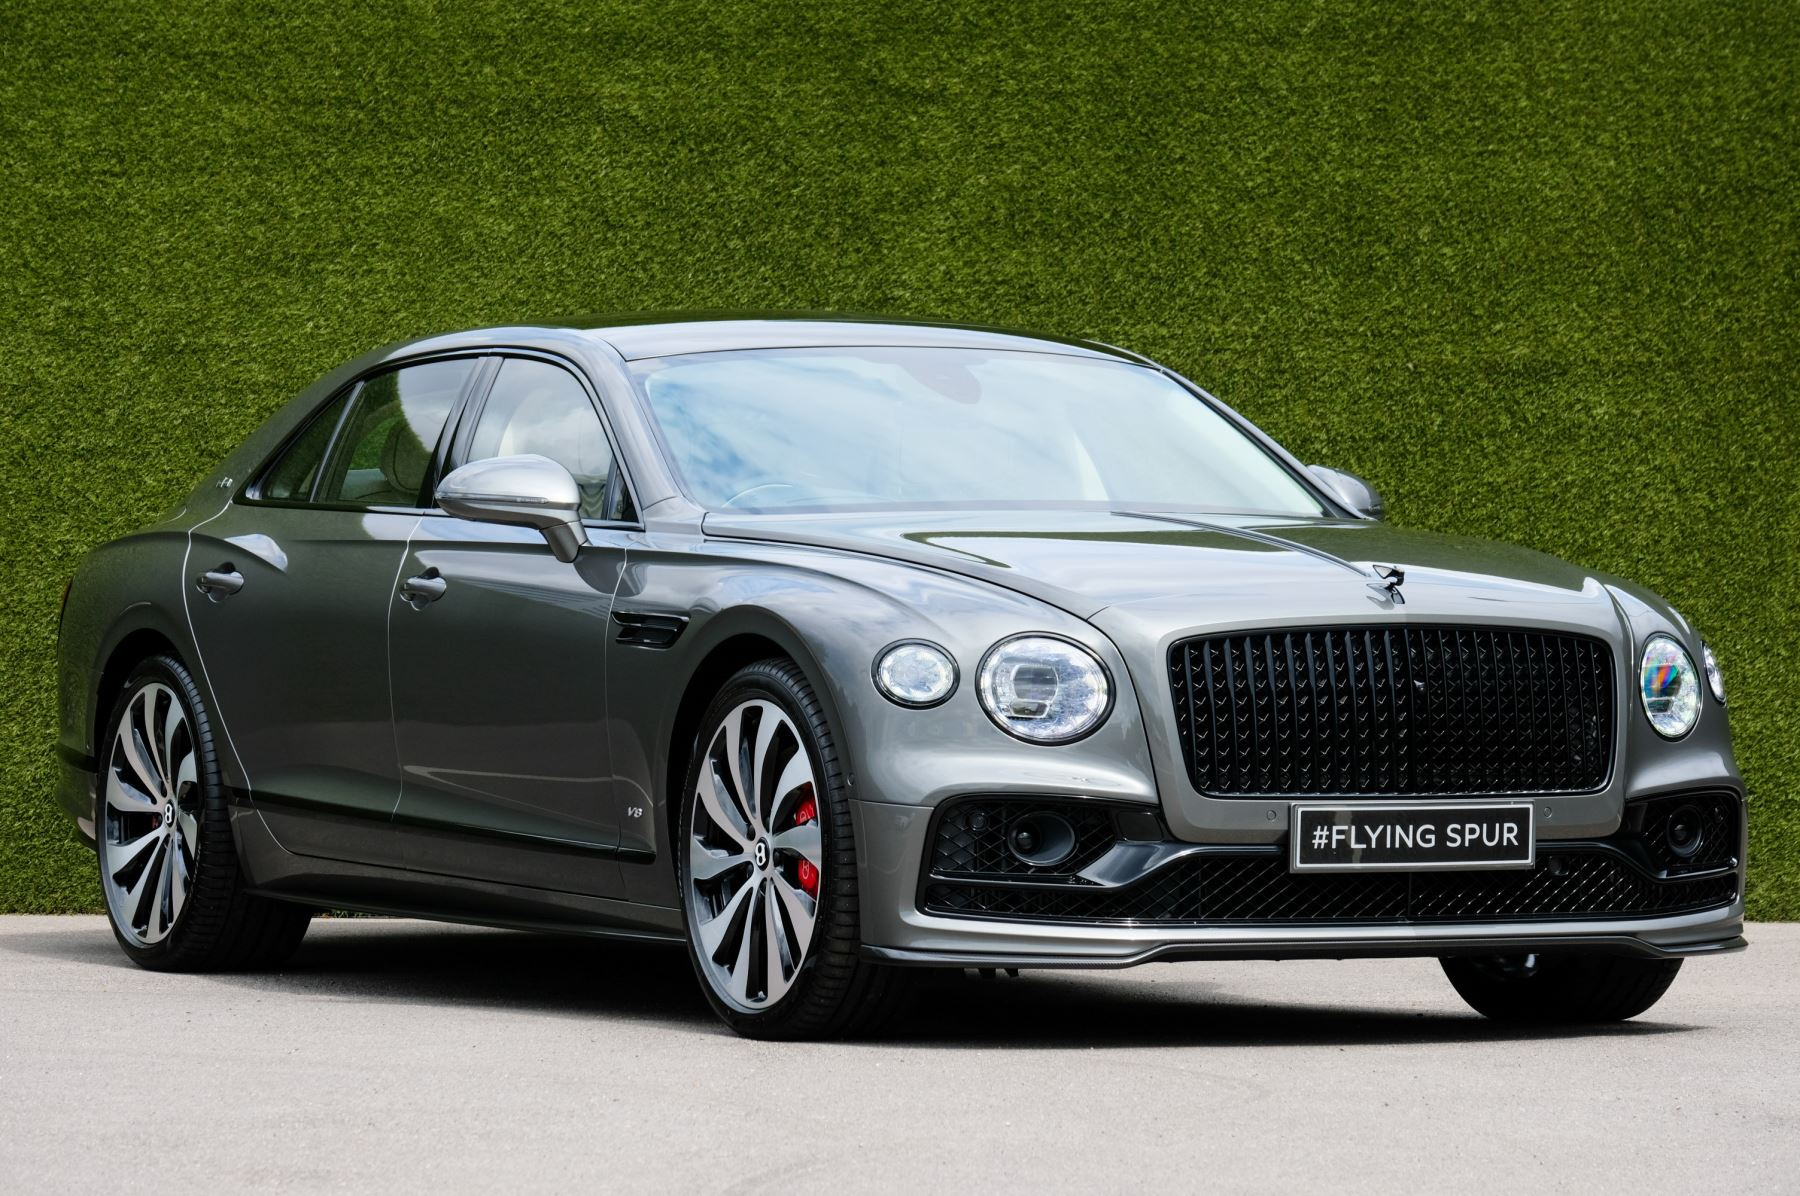 Bentley Flying Spur 4.0 V8 - Mulliner Driving Specification with Black Painted and Bright Machined Wheels Automatic 4 door Saloon (2021) image